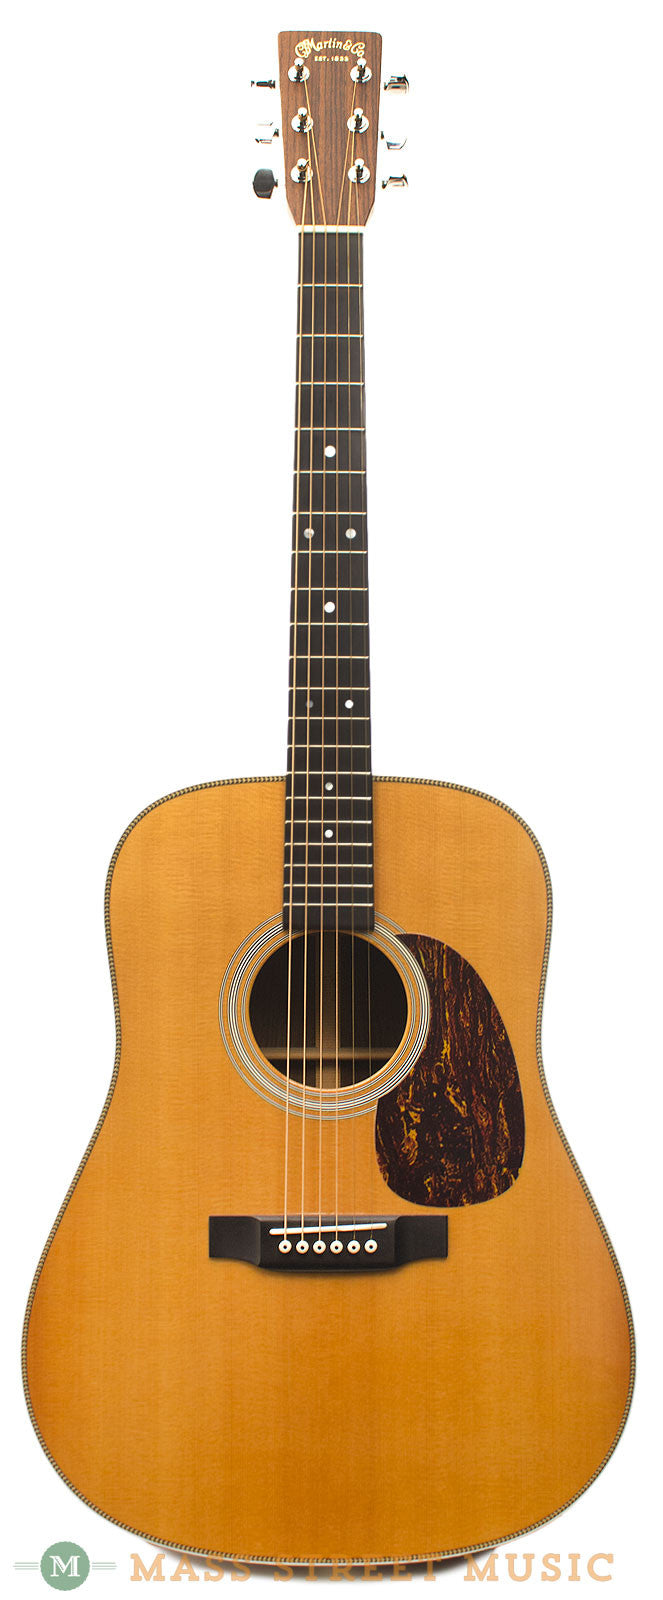 Martin Hd 28 2002 Used Acoustic Guitar With Original Hardshell Case Mass Street Music Store